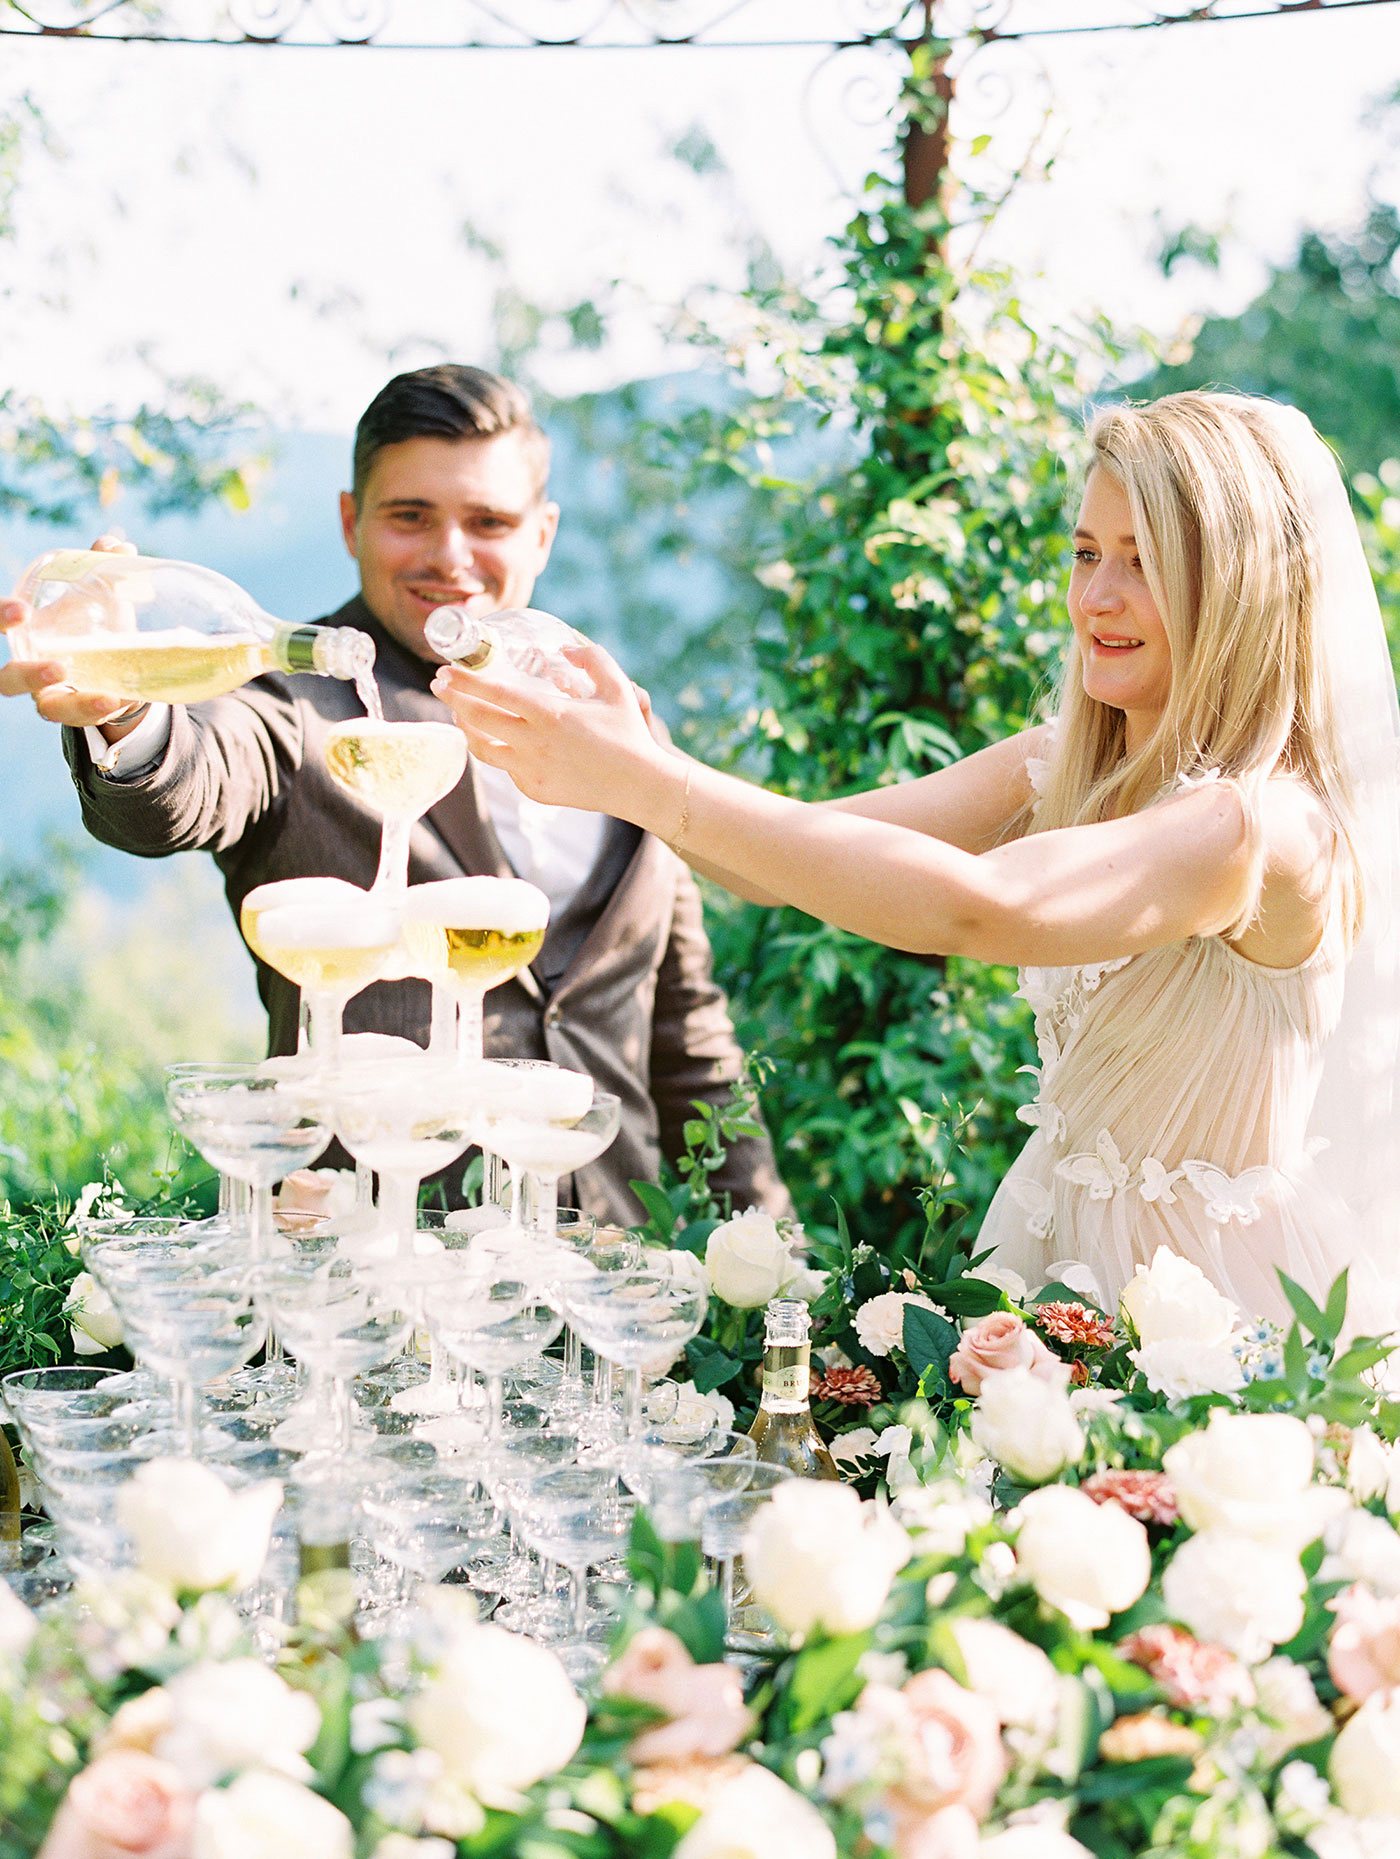 julia franz wedding champagne tower couple